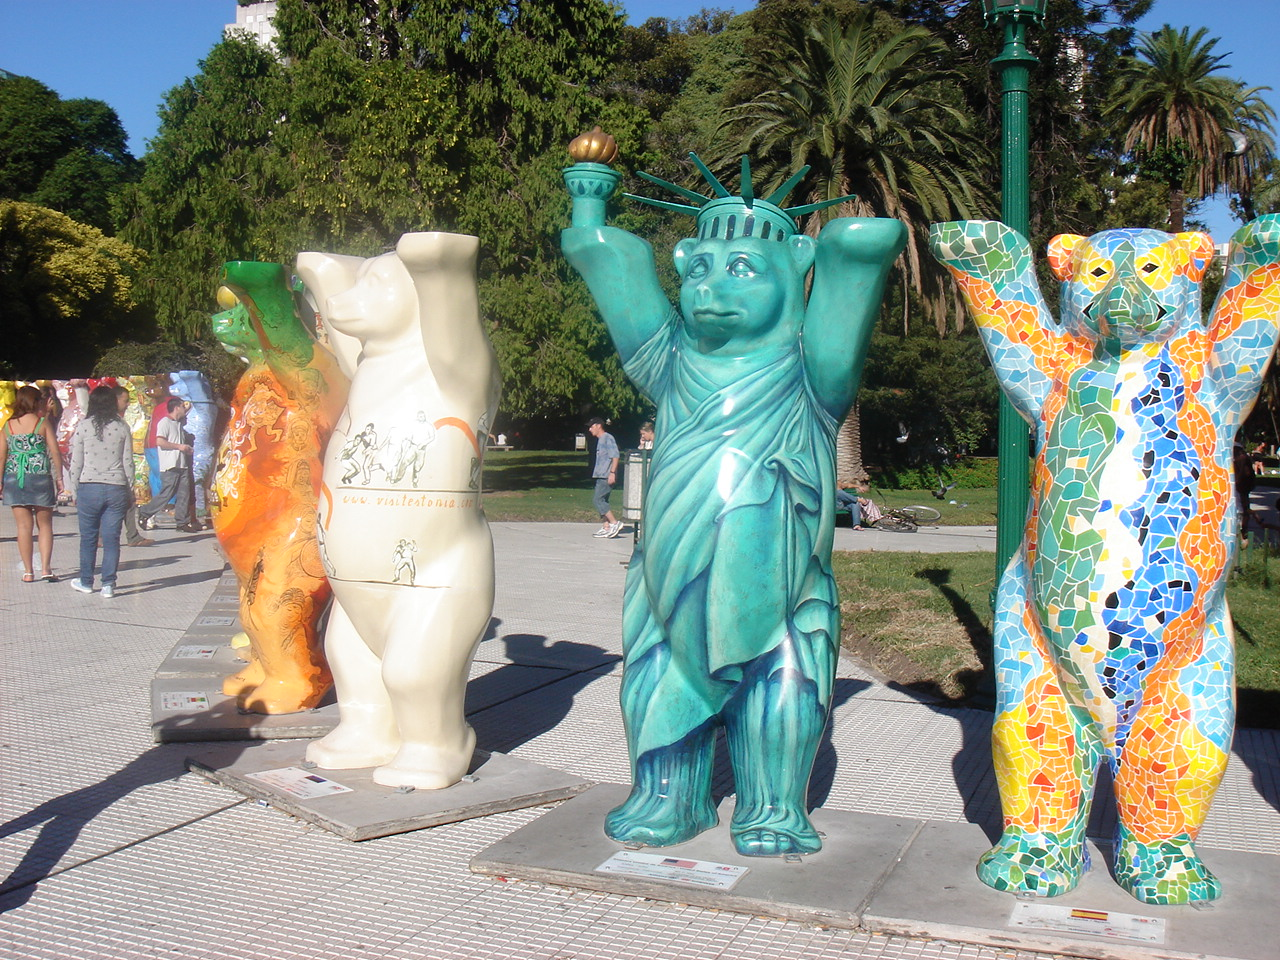 the American bear, for traveling UN peace project, through art